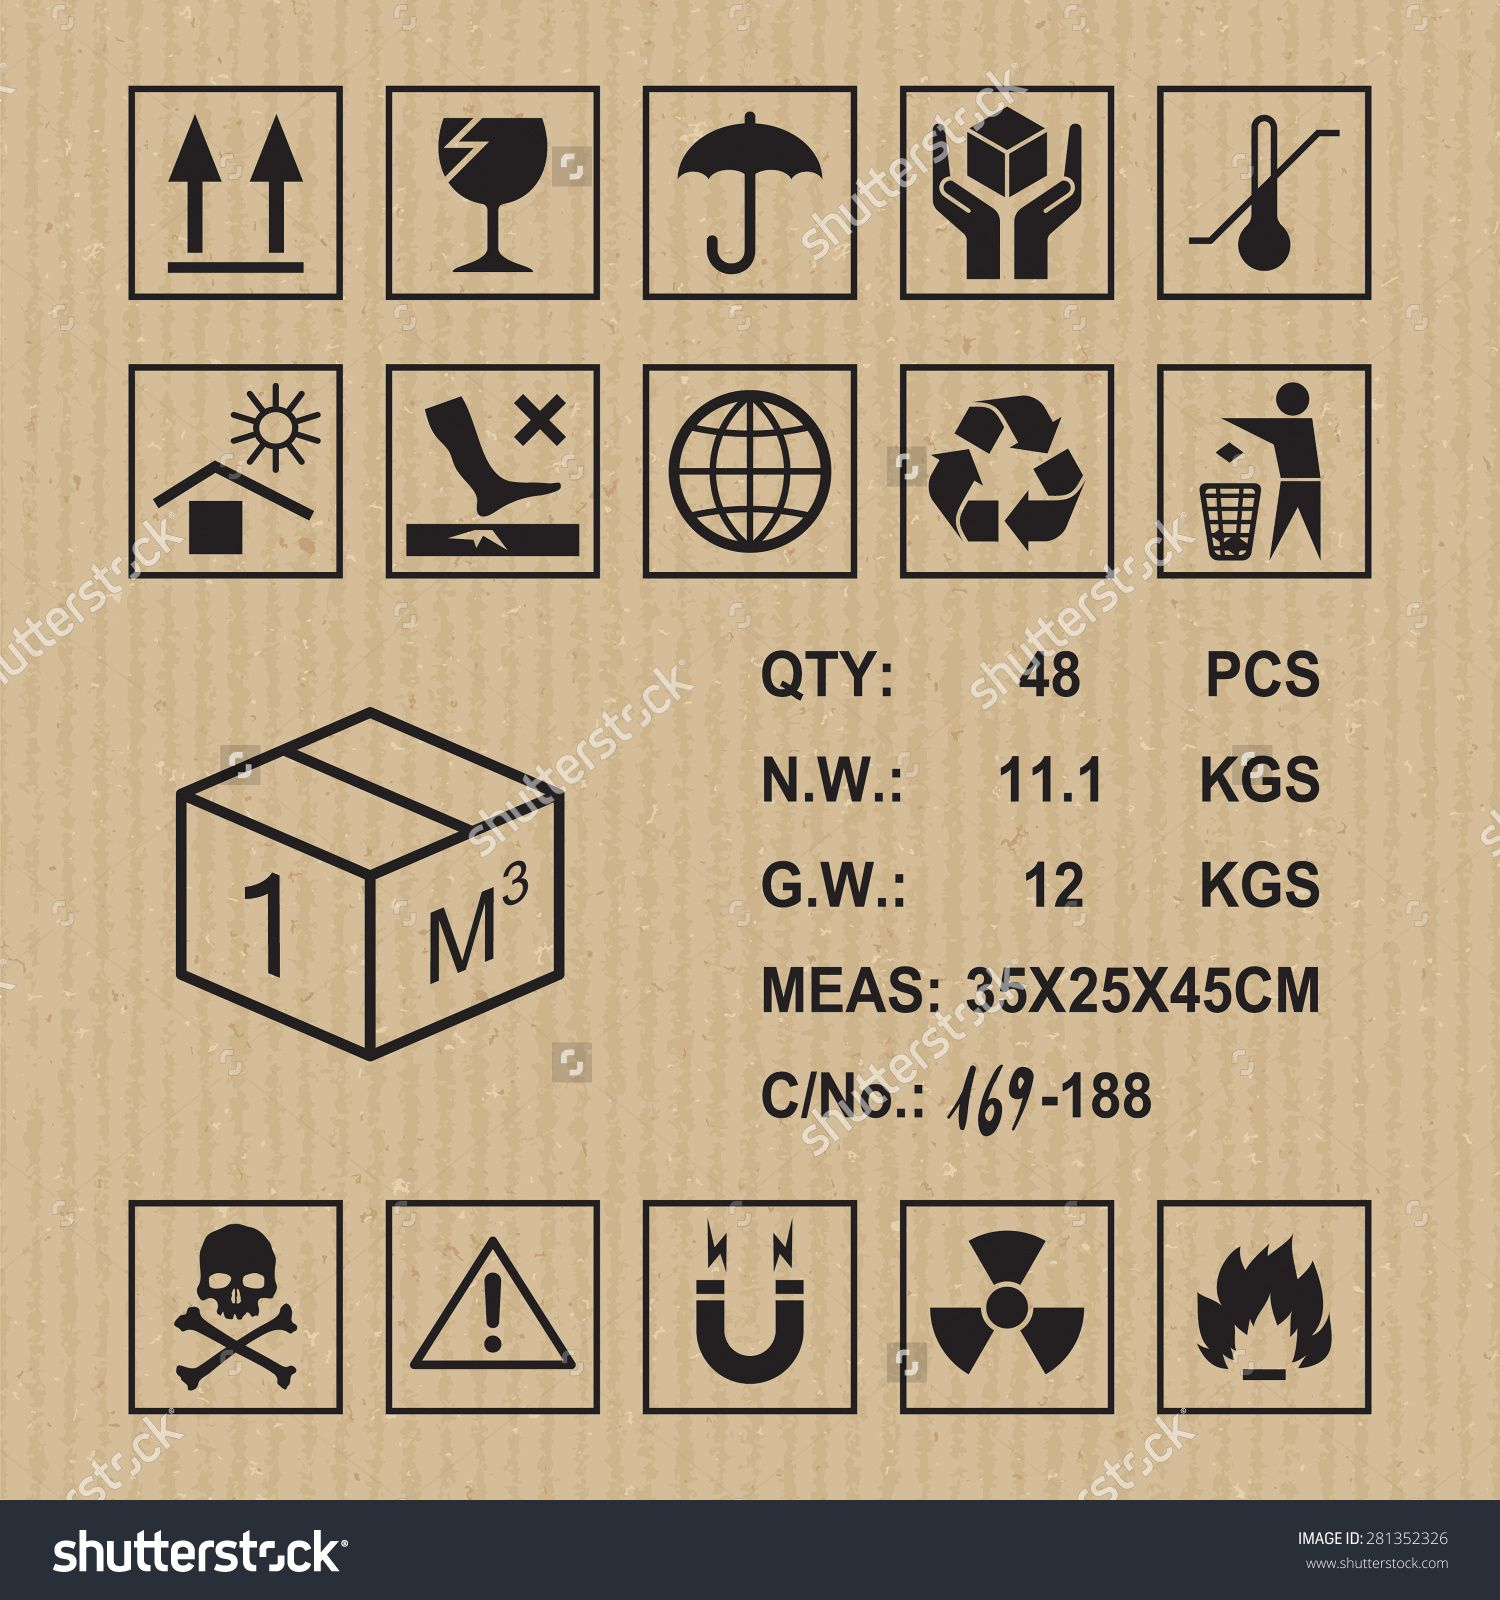 Cargo Symbols On Cardboard Texture. Handling, Packing And Caution ...